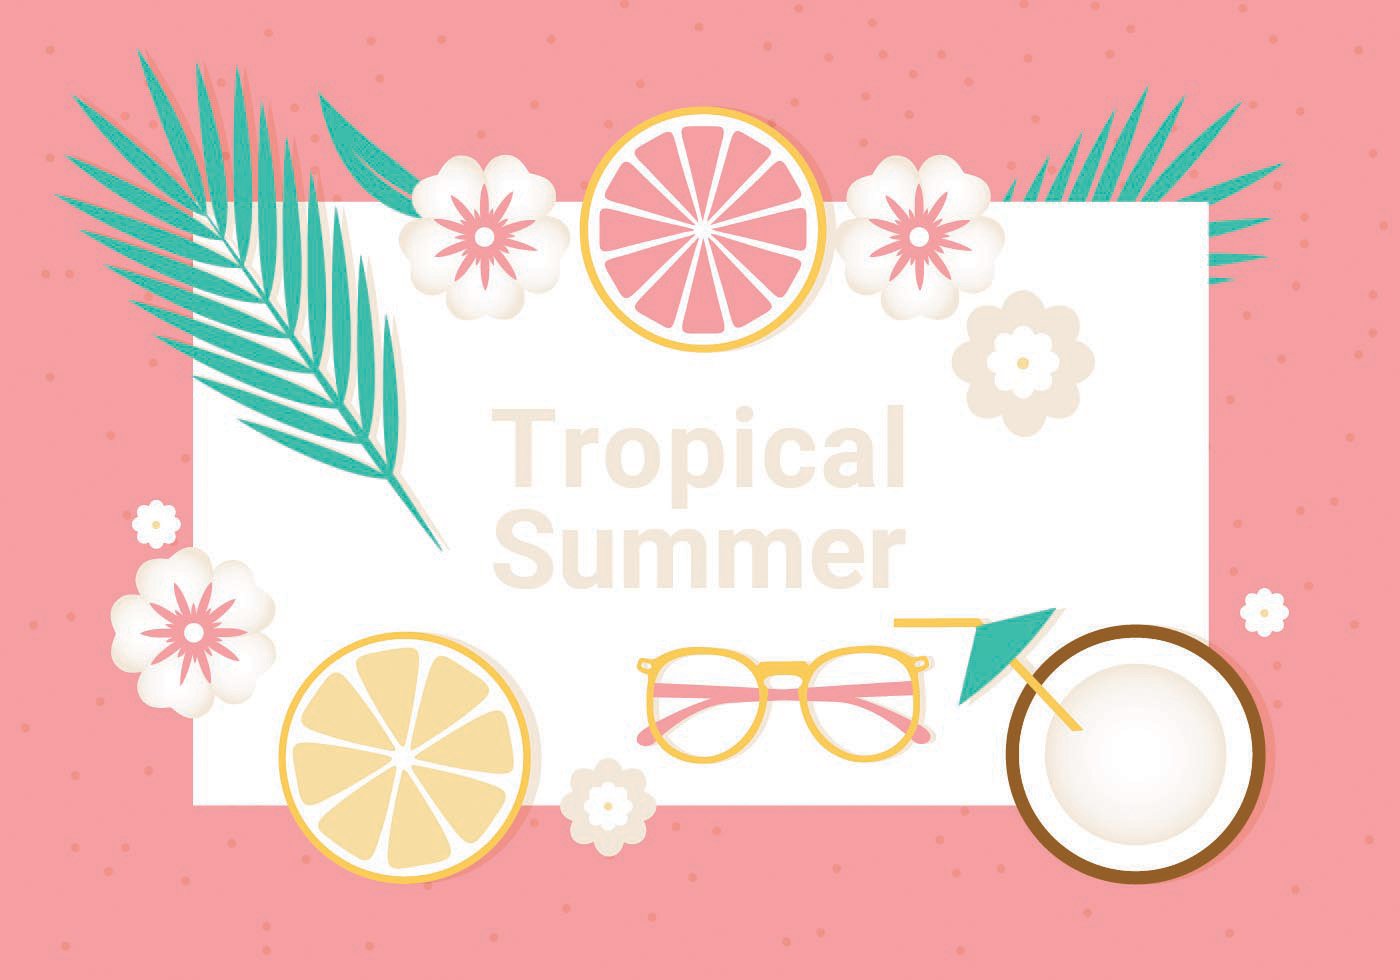 Free Tropical Summer Vector Illustration Download Free Vector Art Stock Graphics Amp Images